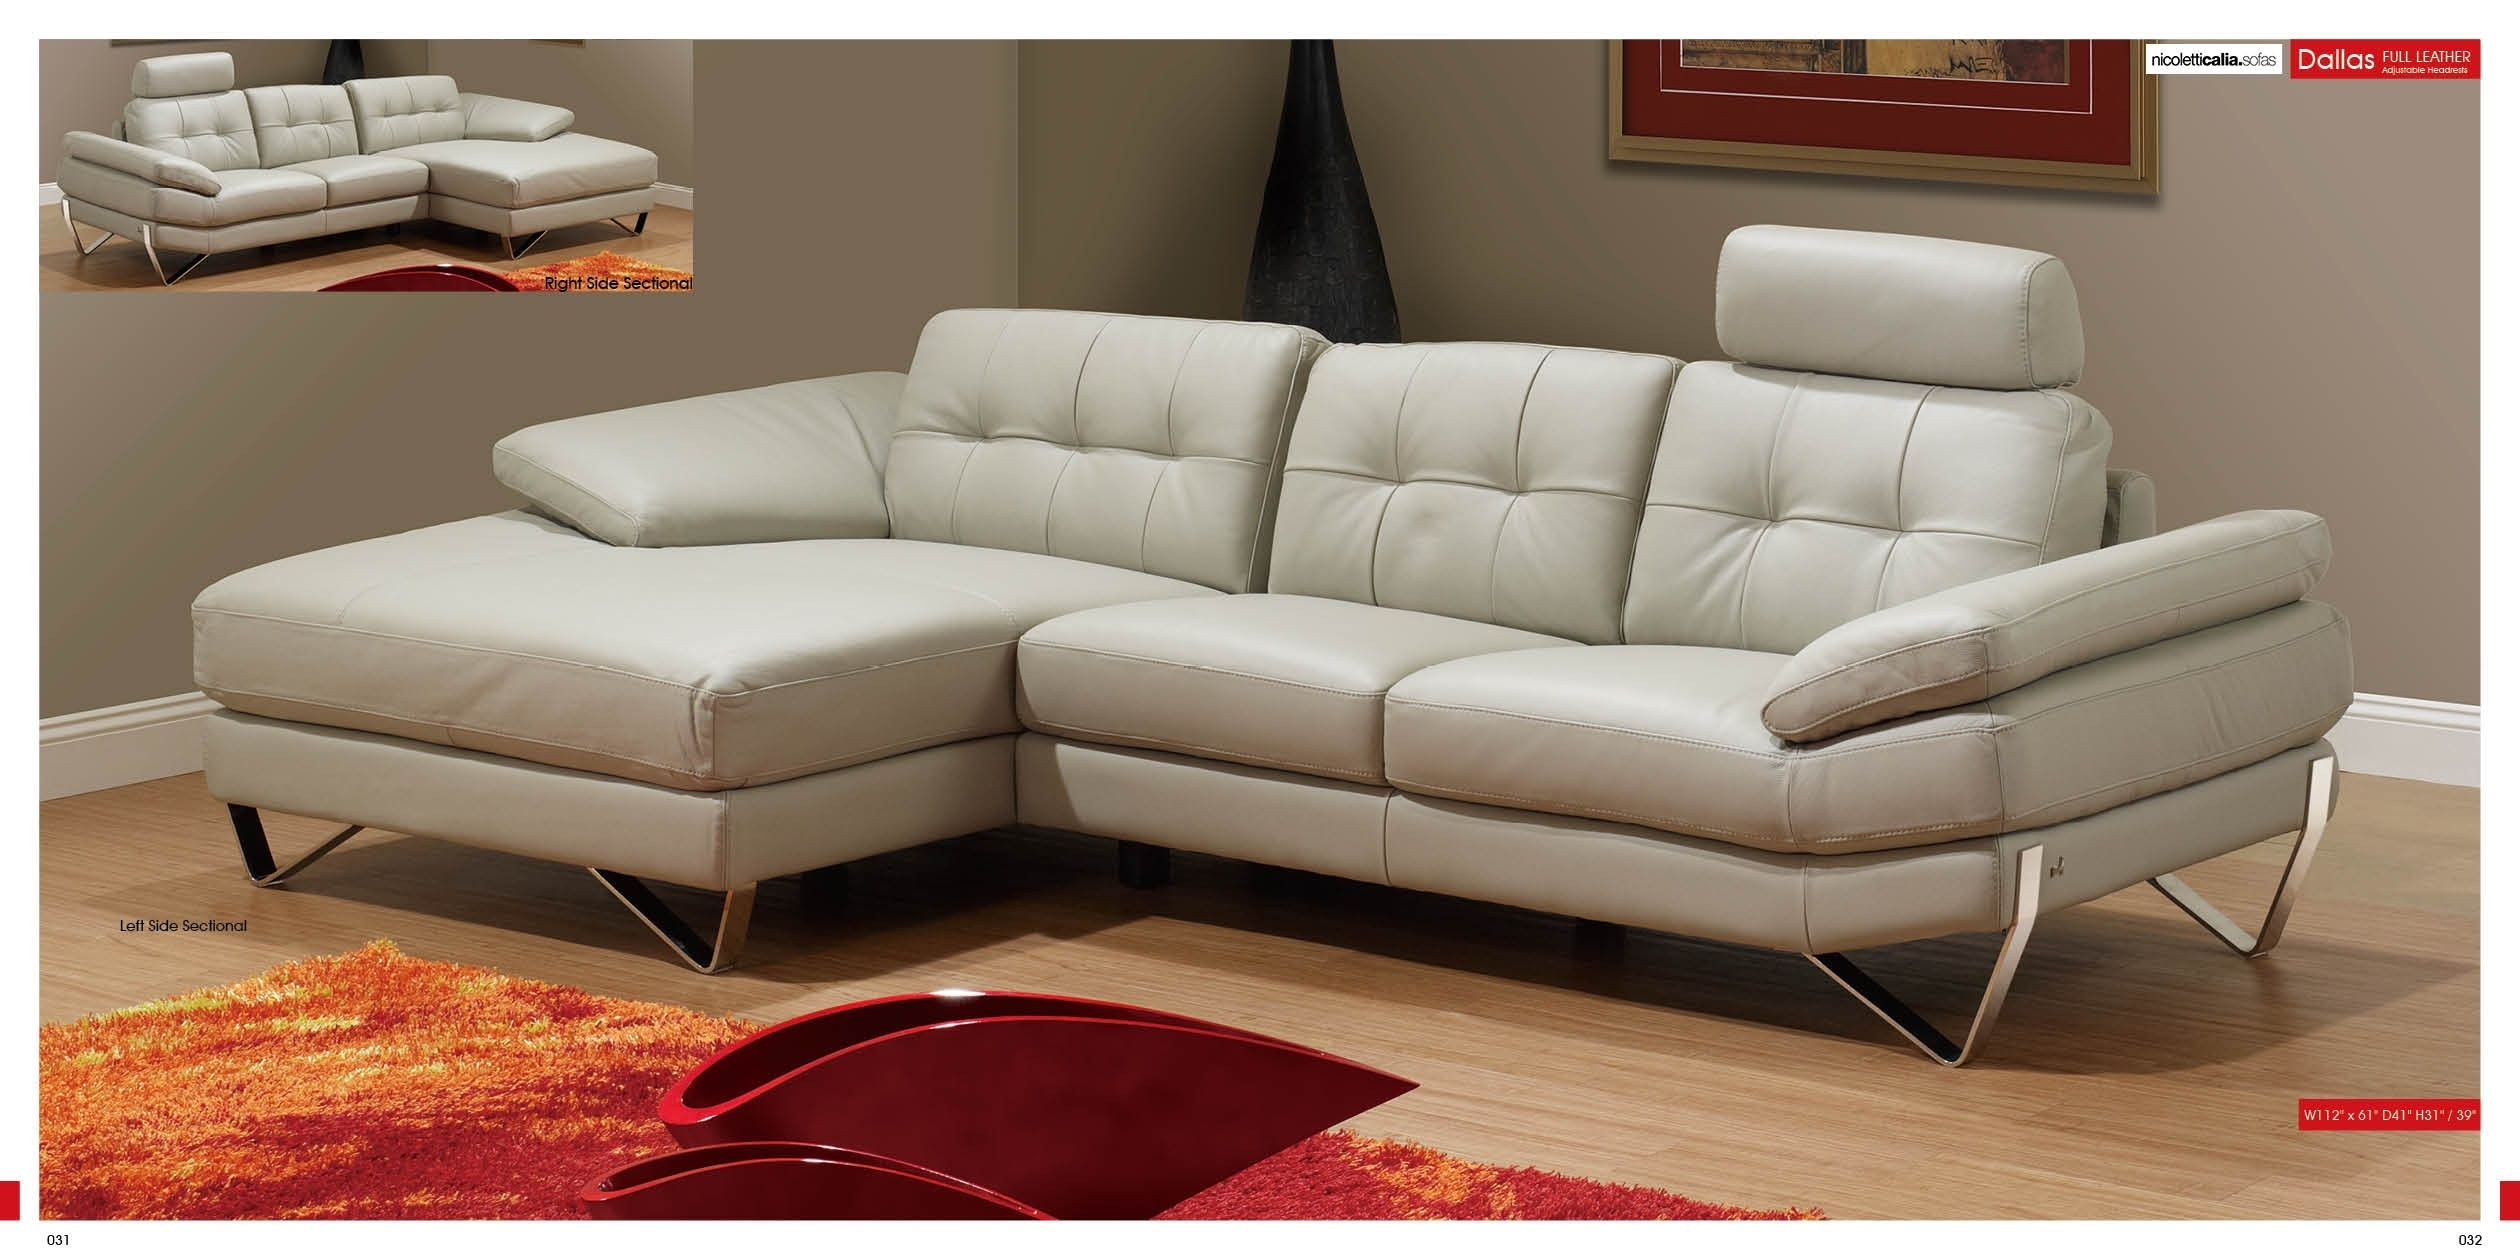 Furniture & Sofa: Havertys Frisco | Havertys Charlotte Nc | Havertys Intended For Macon Ga Sectional Sofas (Image 5 of 10)